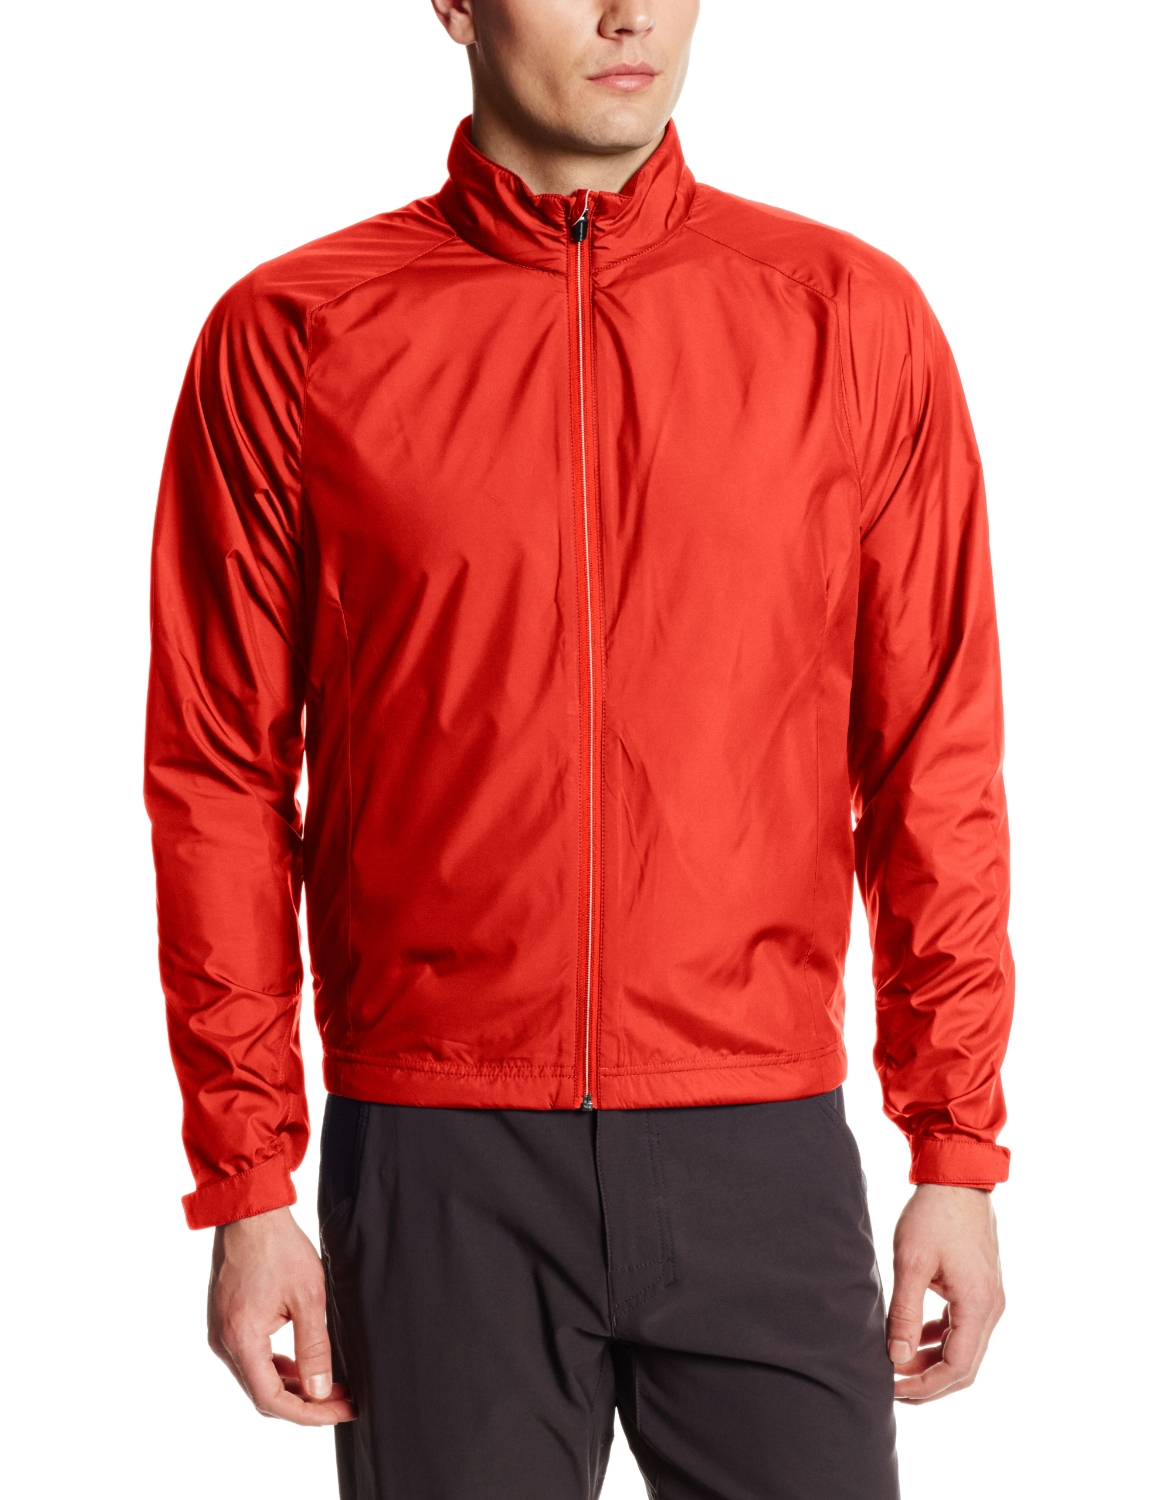 Mens Zero Restriction Cloud Full Zip Golf Jackets